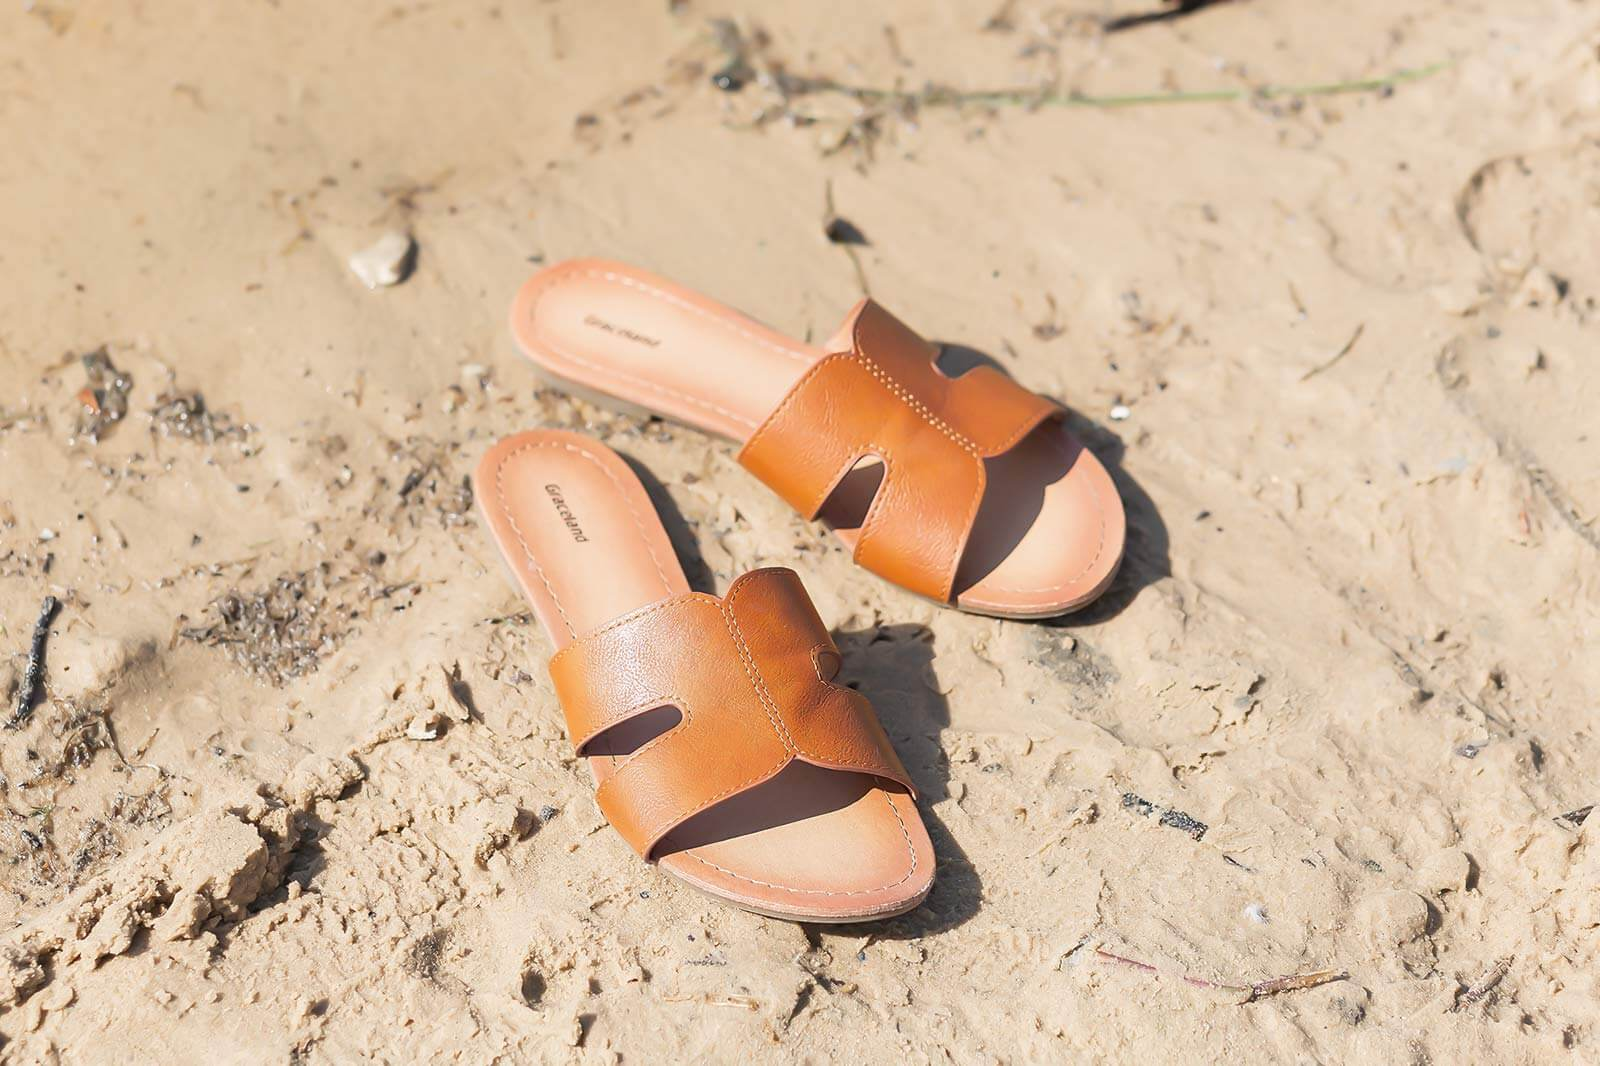 Sandalen Trends 2020, Slides, Pantoletten, Shoelove by Deichmann